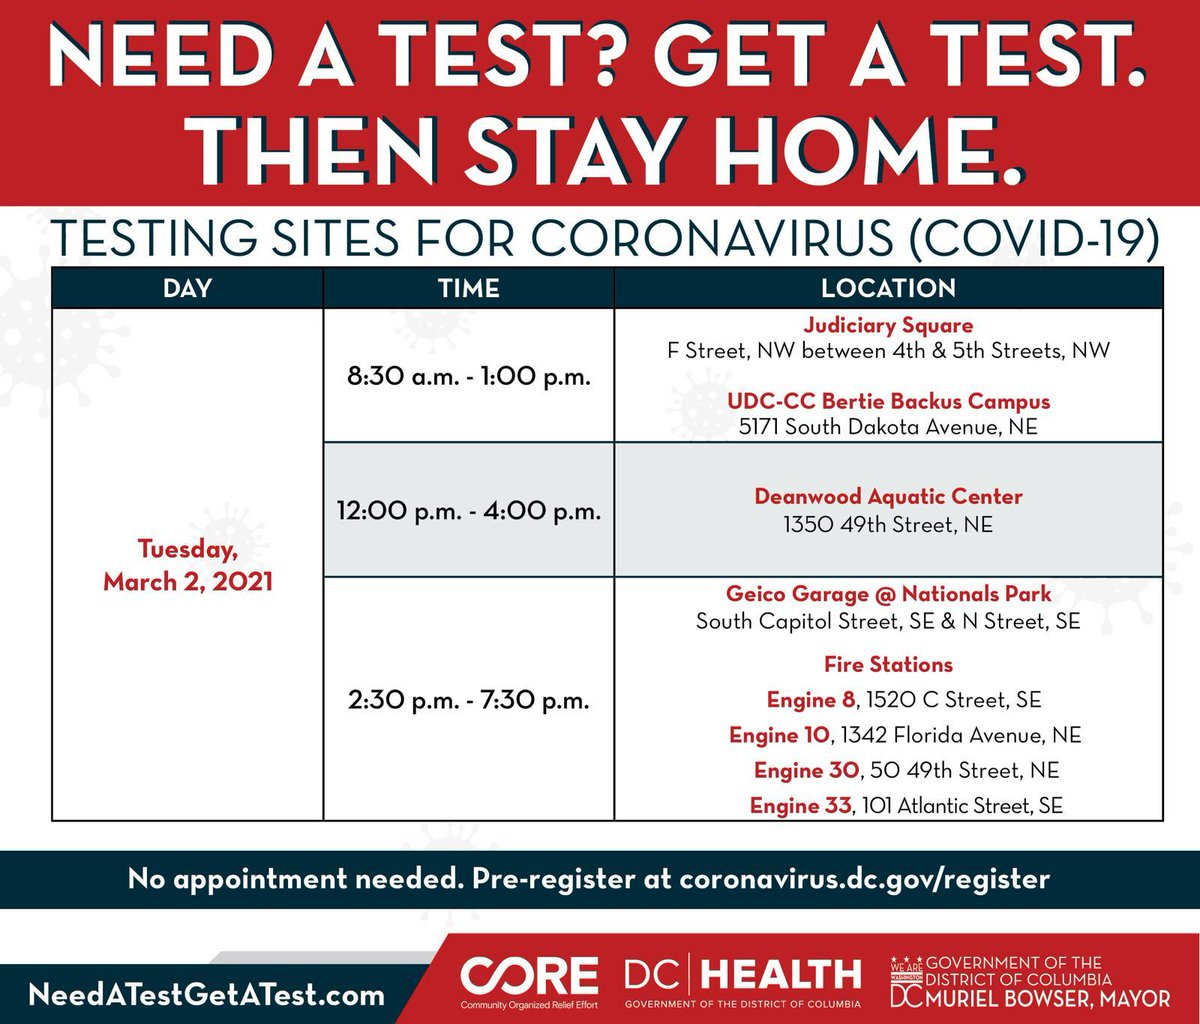 Here are todays testing sites. Save time by pre-registering at coronavirus.dc.gov/register. -Symptoms? Stay home and call your doctor. -Doctor isn't available or cannot give you a COVID-19 test? Visit a free public testing site near you. -Stay home while you await results.